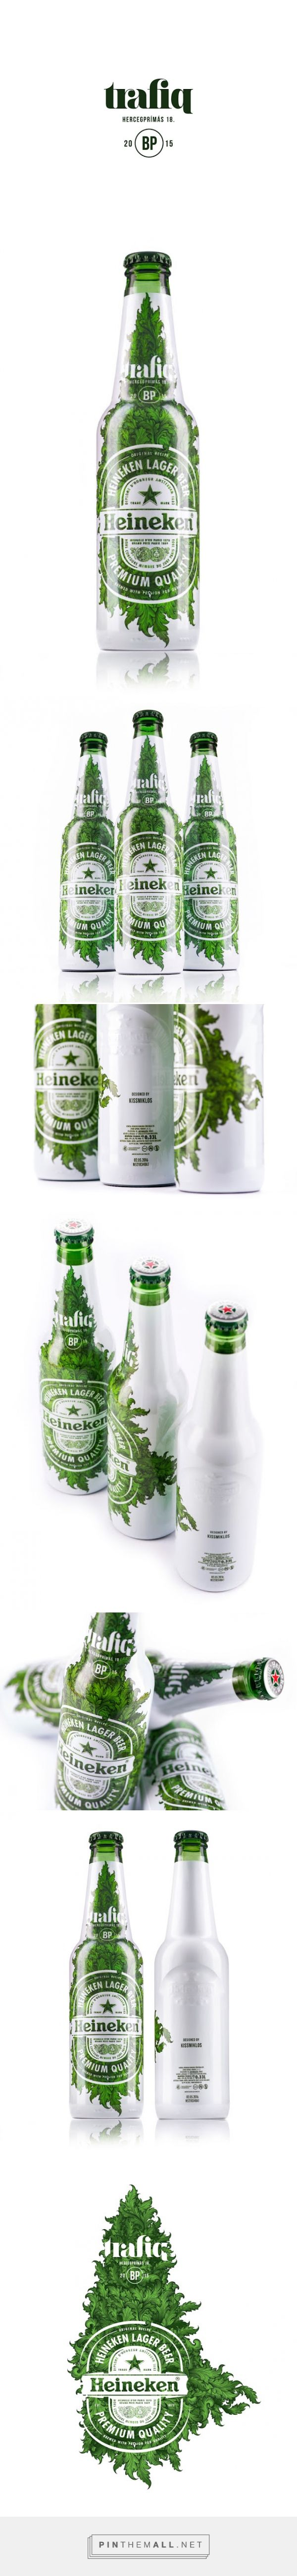 Trafiq Club Heineken Limited Edition Packaging designed by kissmiklos ​ - http://www.packagingoftheworld.com/2015/10/trafiq-club-heineken-limited-edition.html